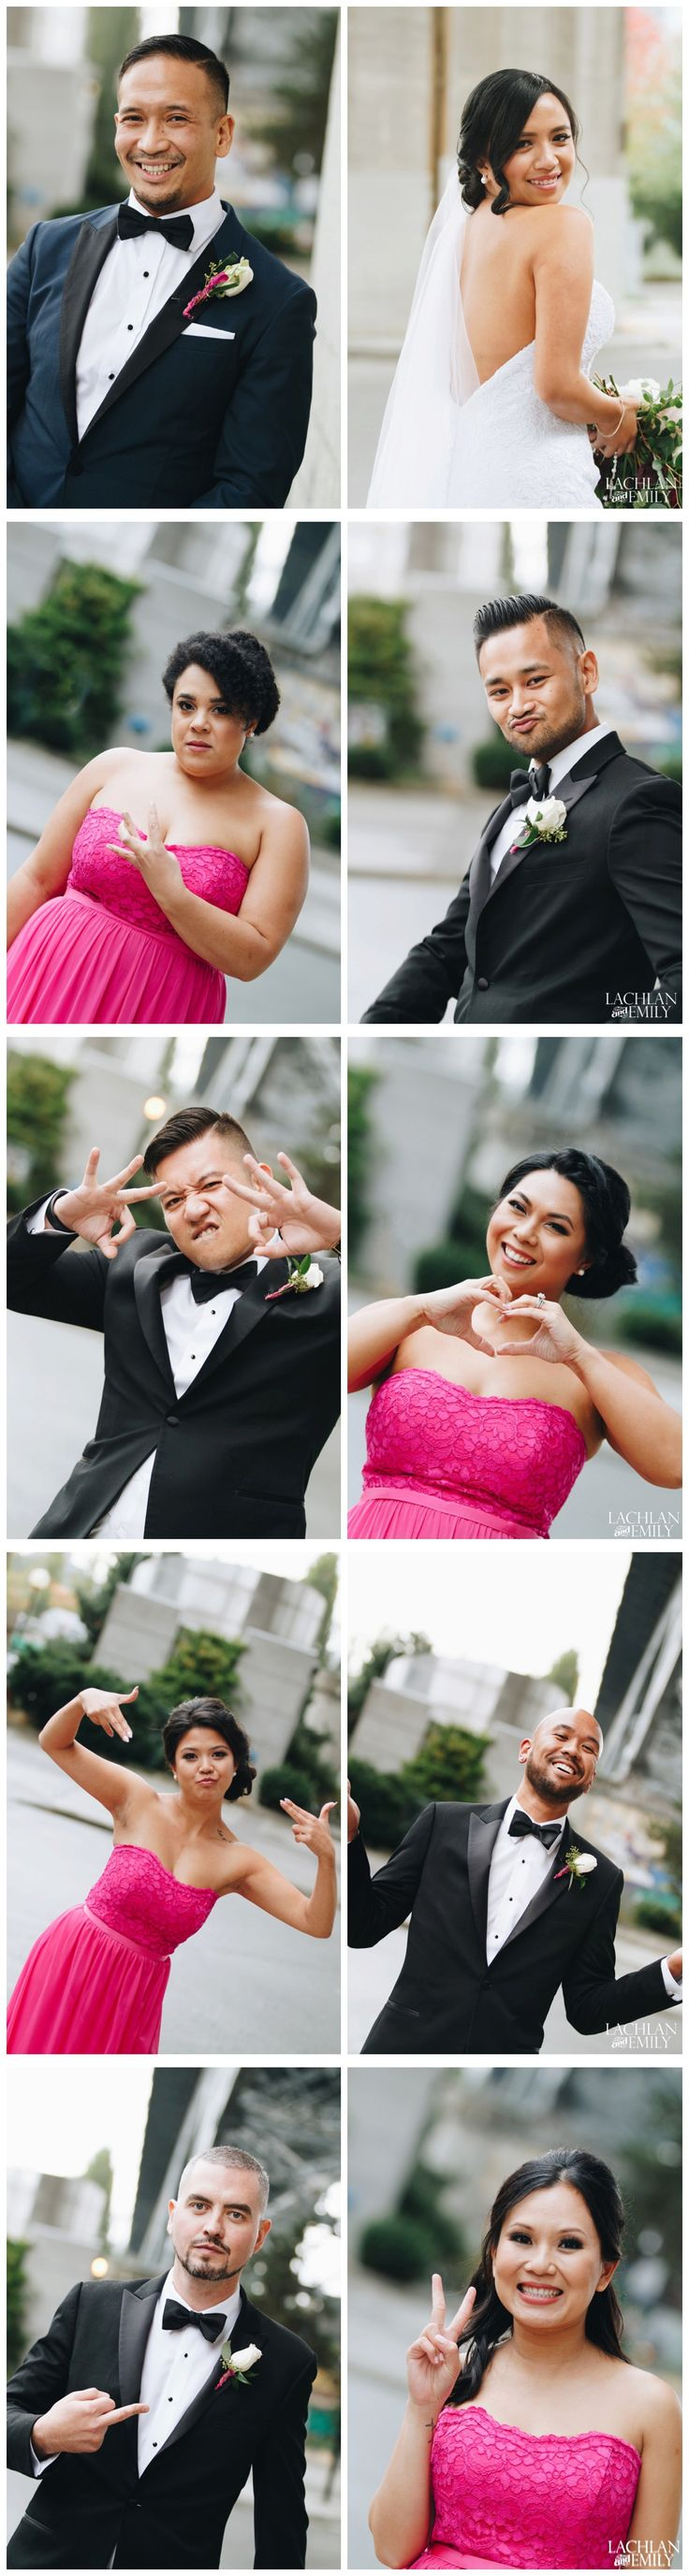 Do something different with your wedding party photos!